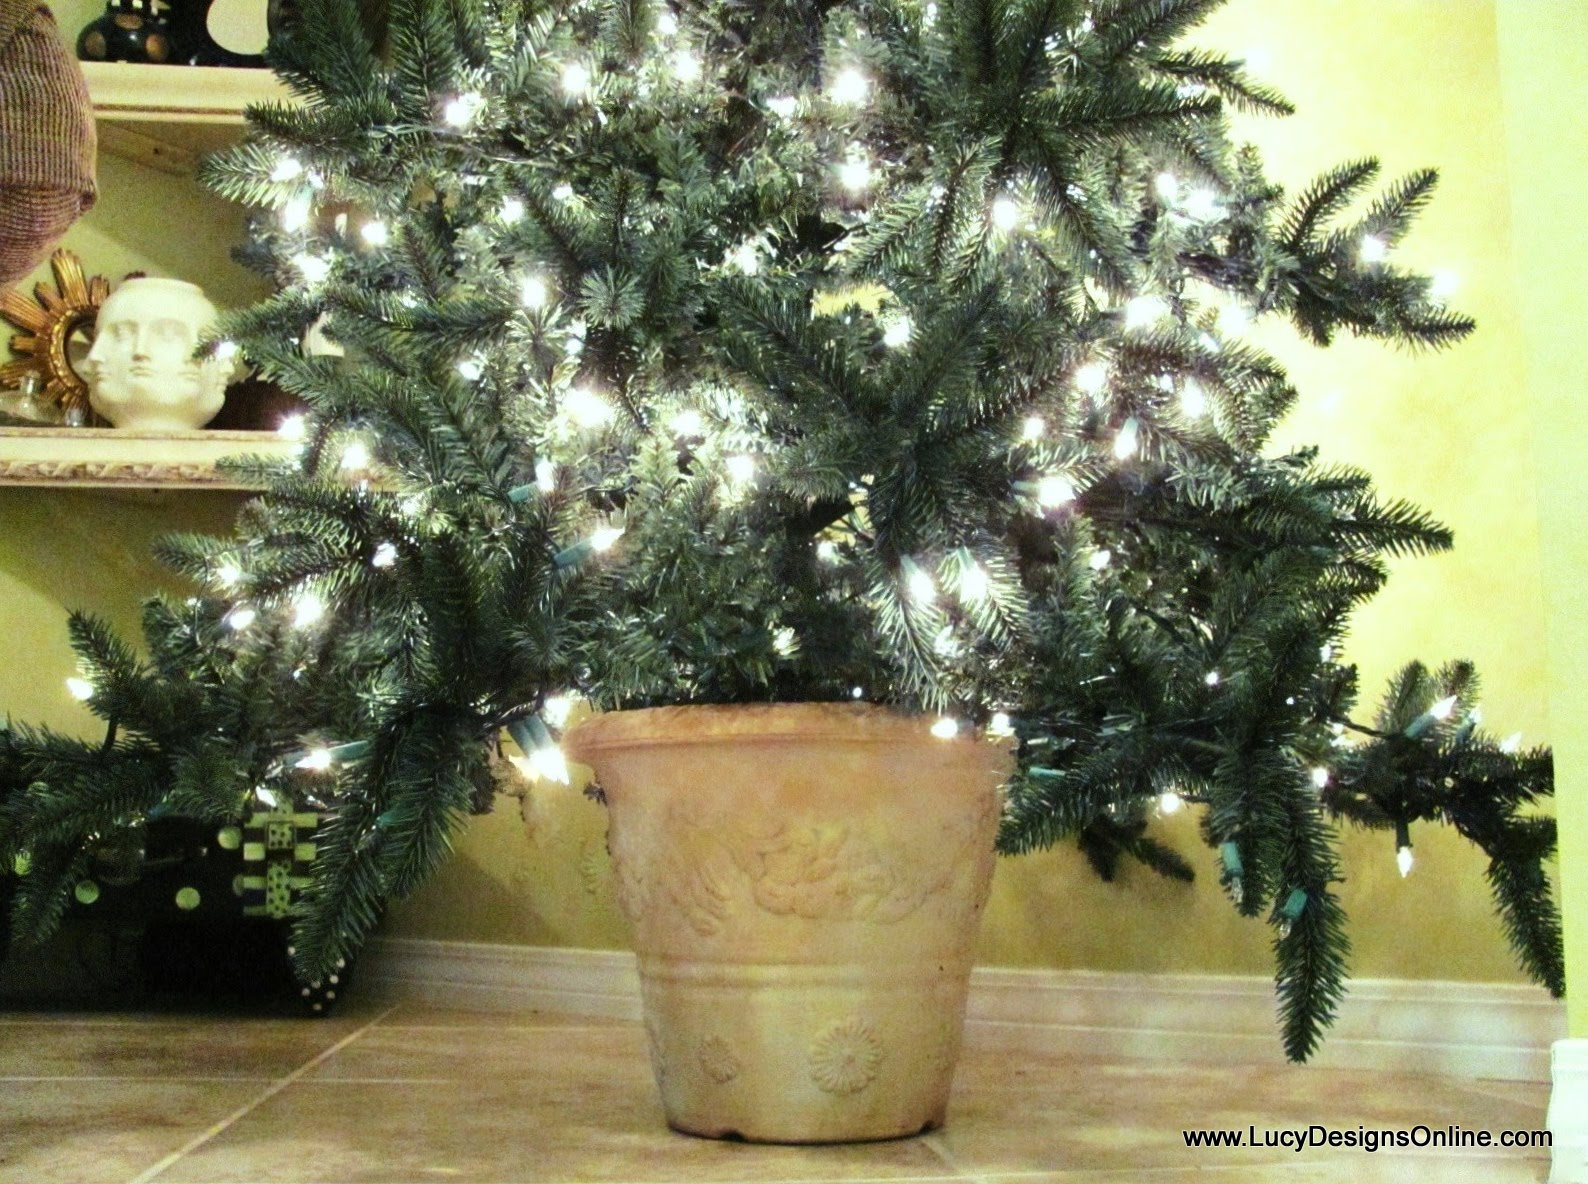 Artificial Christmas Tree in a Planter Pot DIY | Lucy Designs